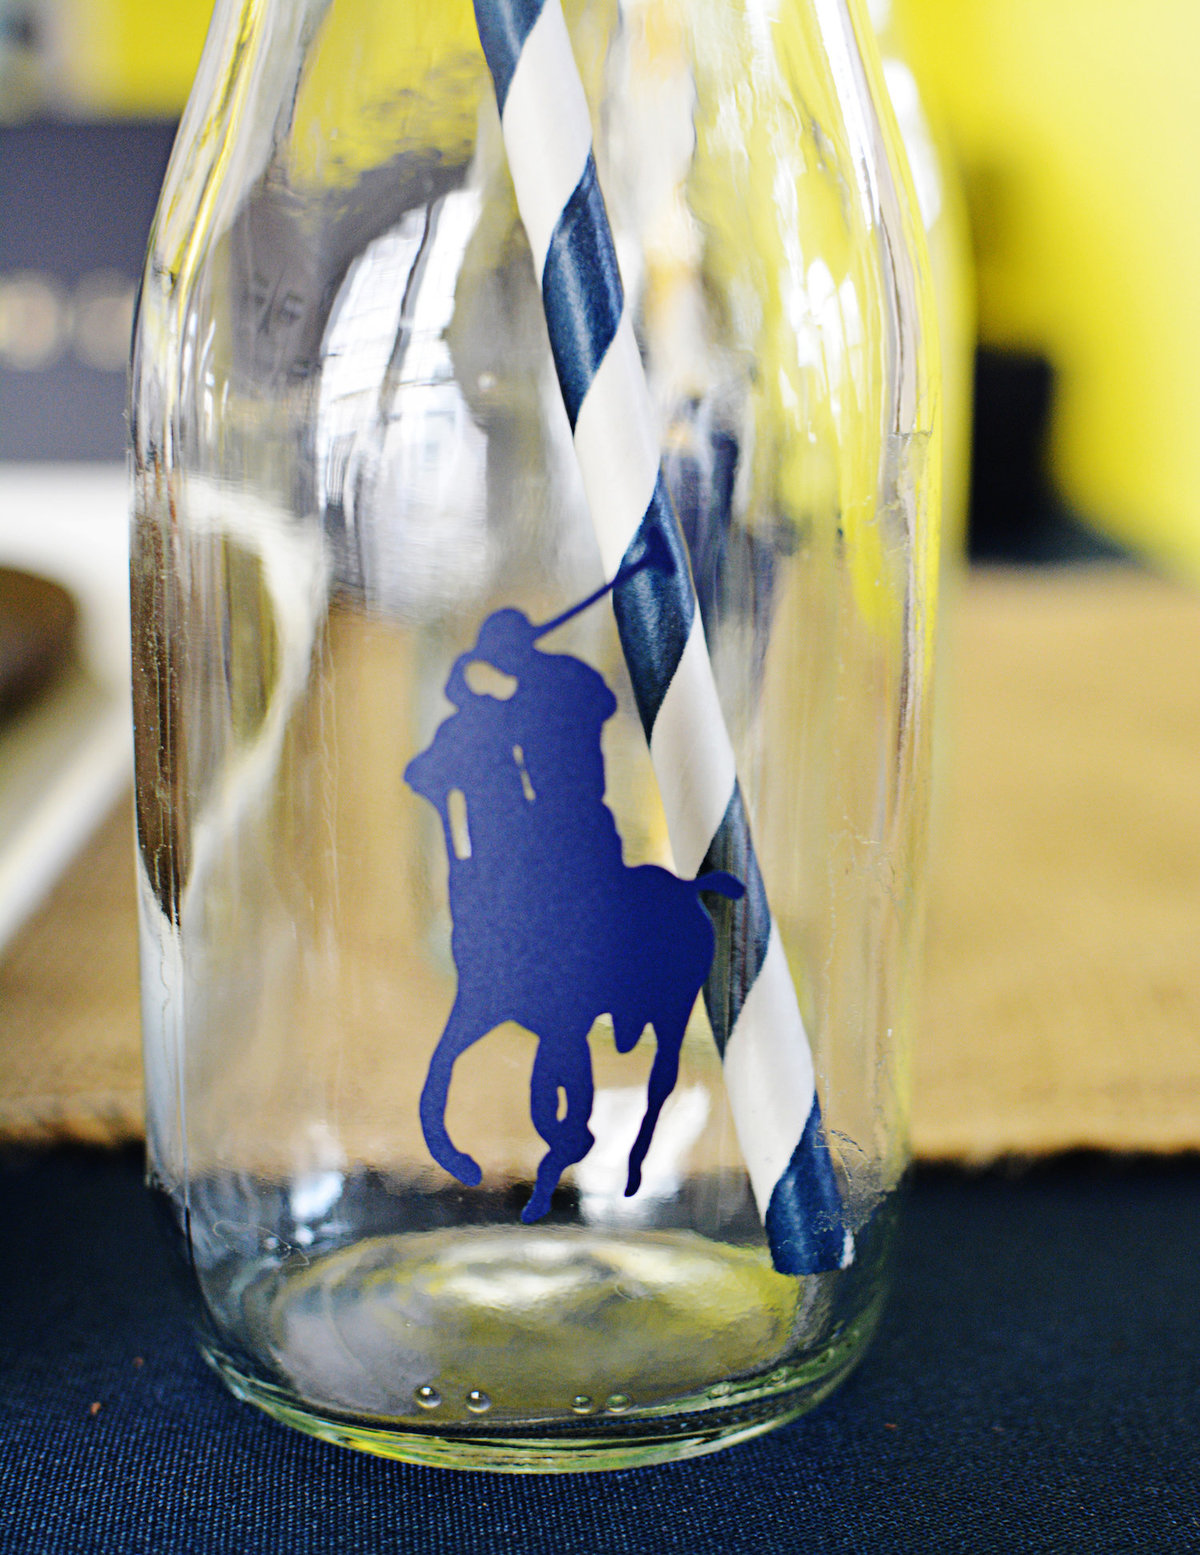 Sparkling Events Designs - Polo Club Milk bottle